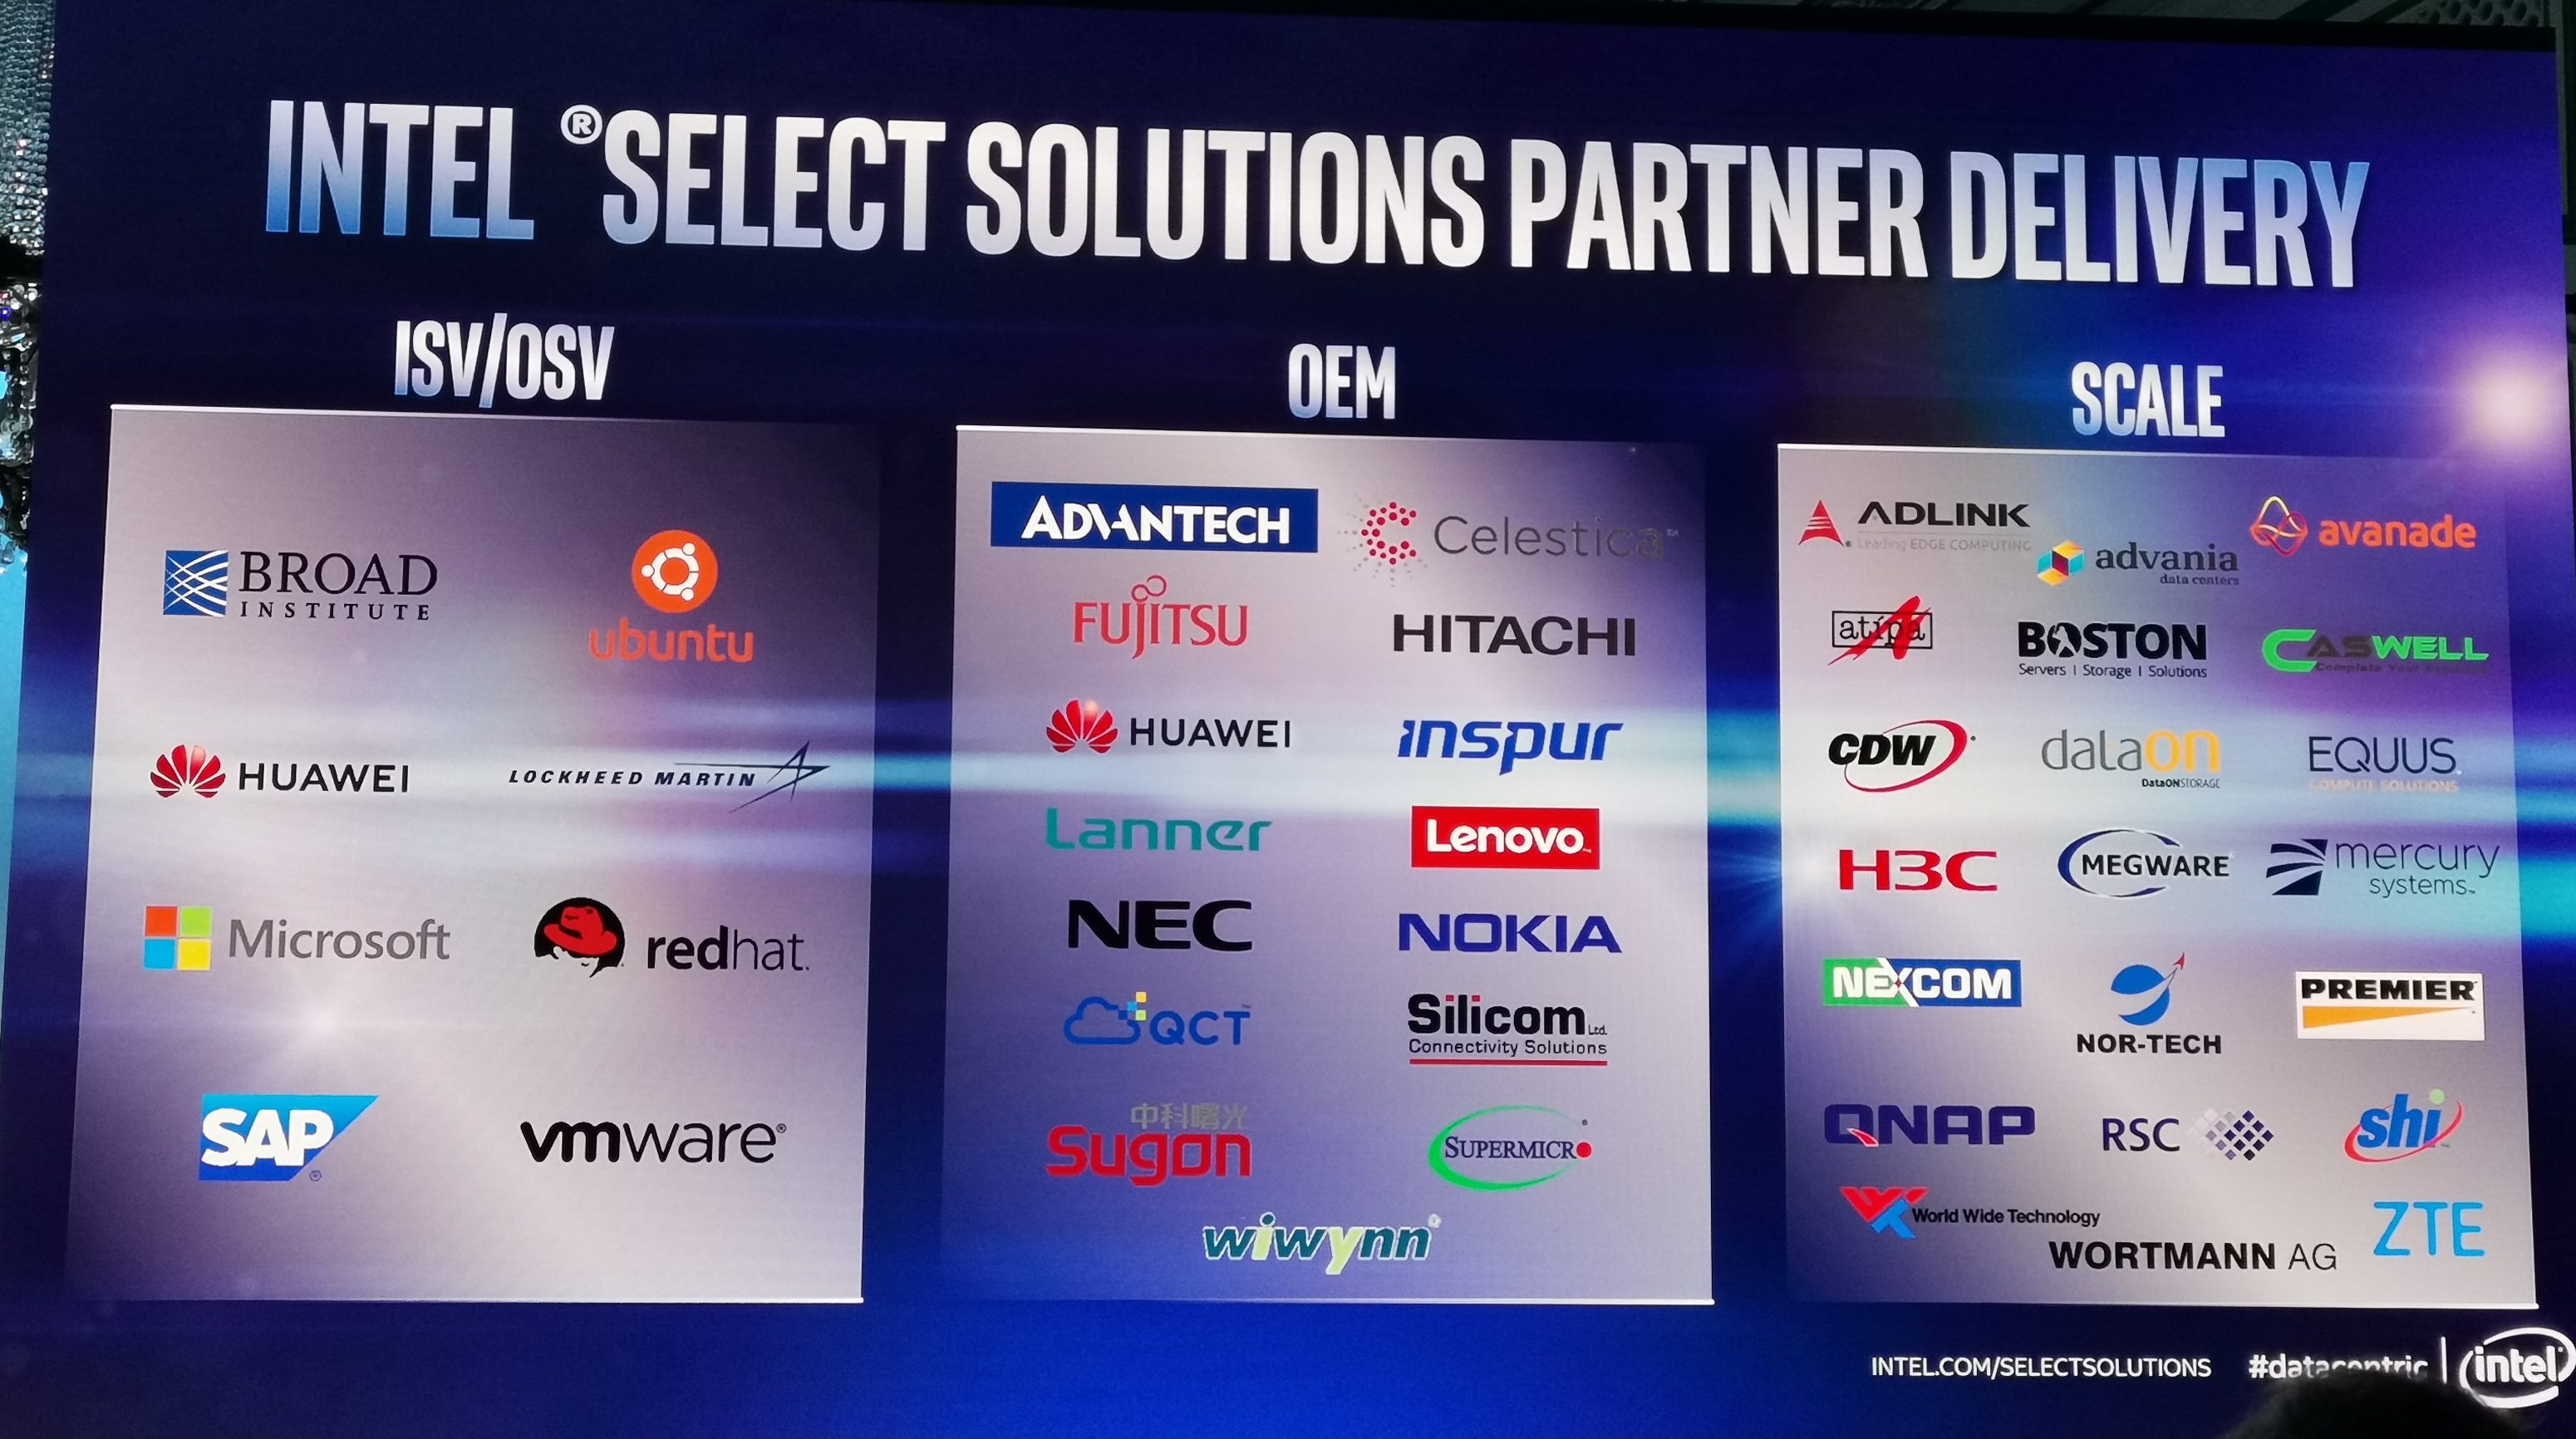 Intel Select Solutions - partners